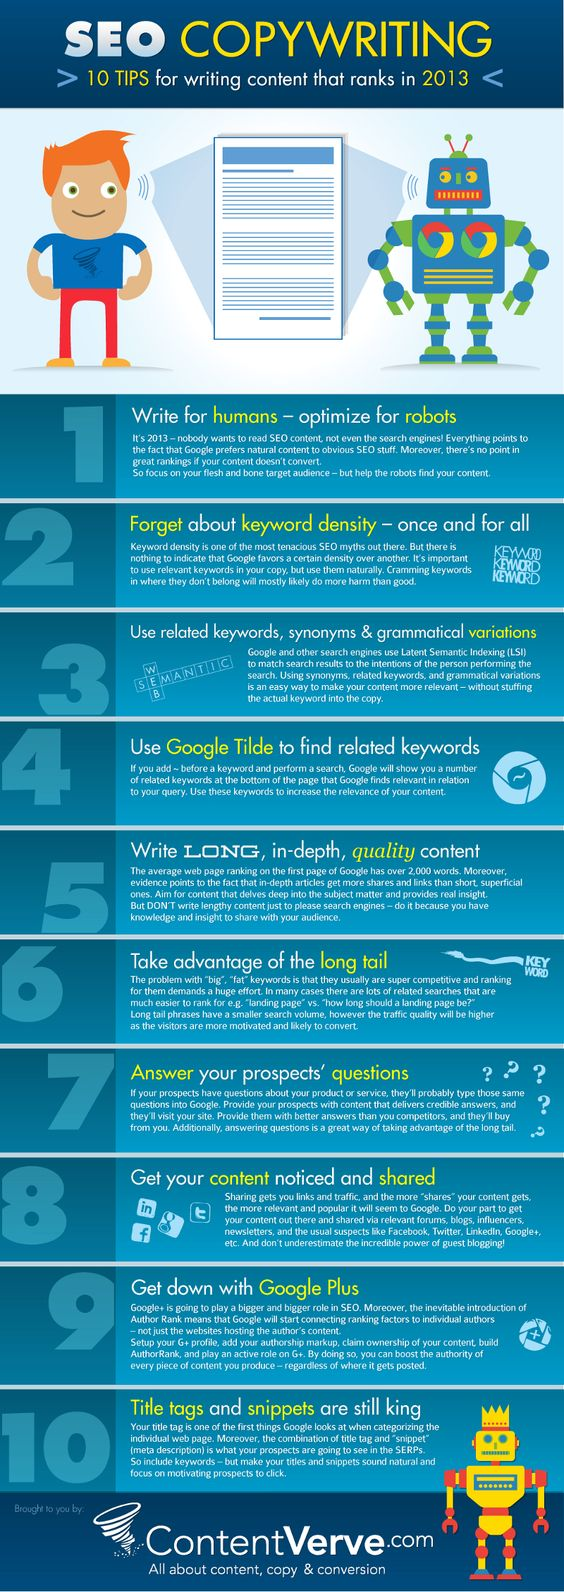 Effective Writing Strategies for SEO1 List of 10 Effective Writing Strategies for SEO